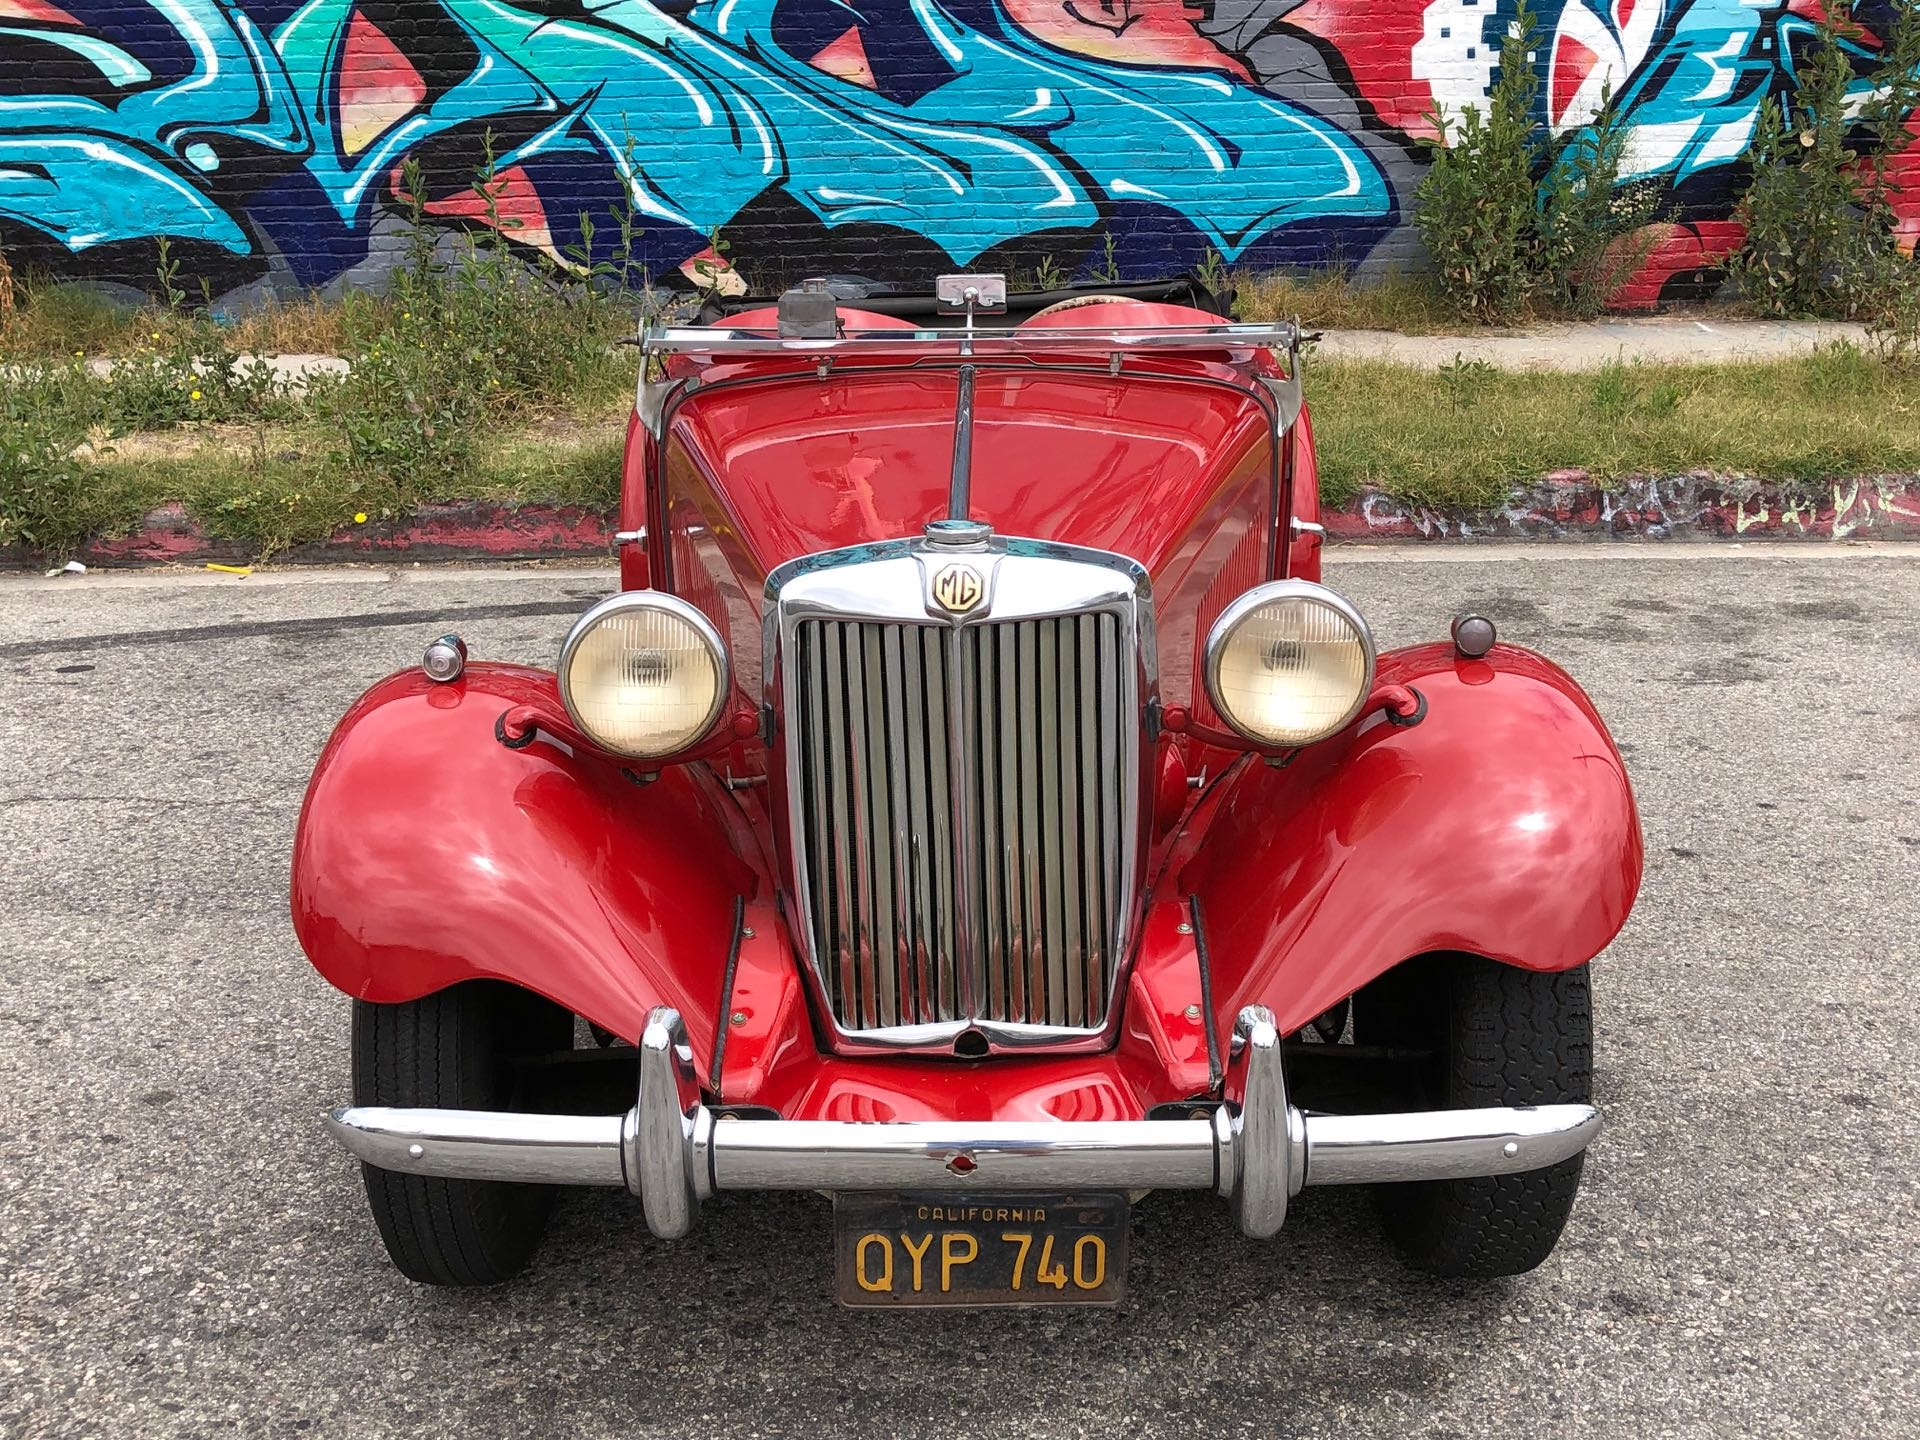 Used-1952-MG-TD-One-owner